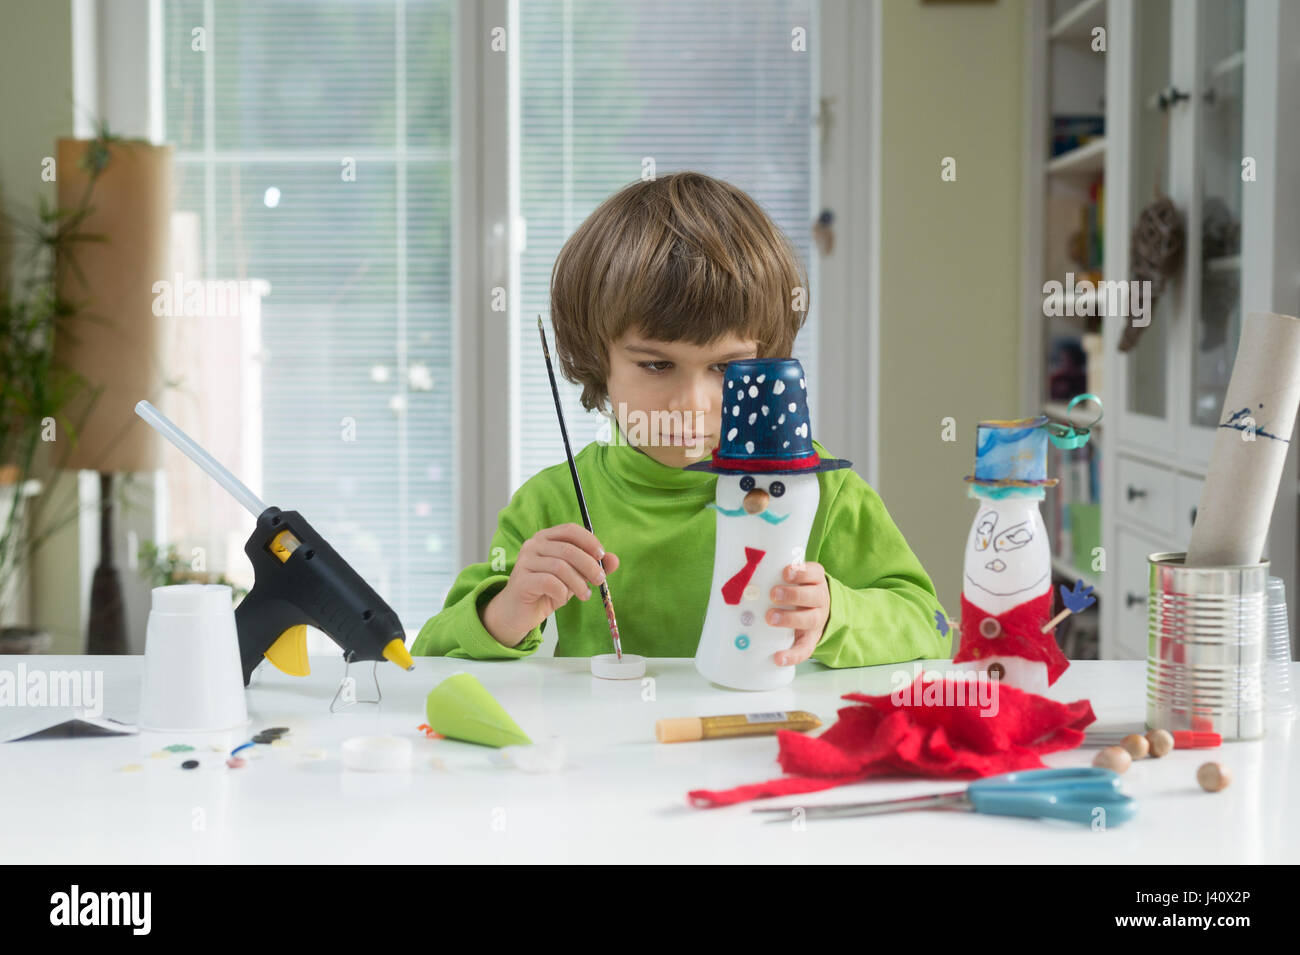 Little boy being creative making homemade do it yourself toys out of little boy being creative making homemade do it yourself toys out of yogurt bottle and paper supporting creativity learning by doing hand craft cr solutioingenieria Images